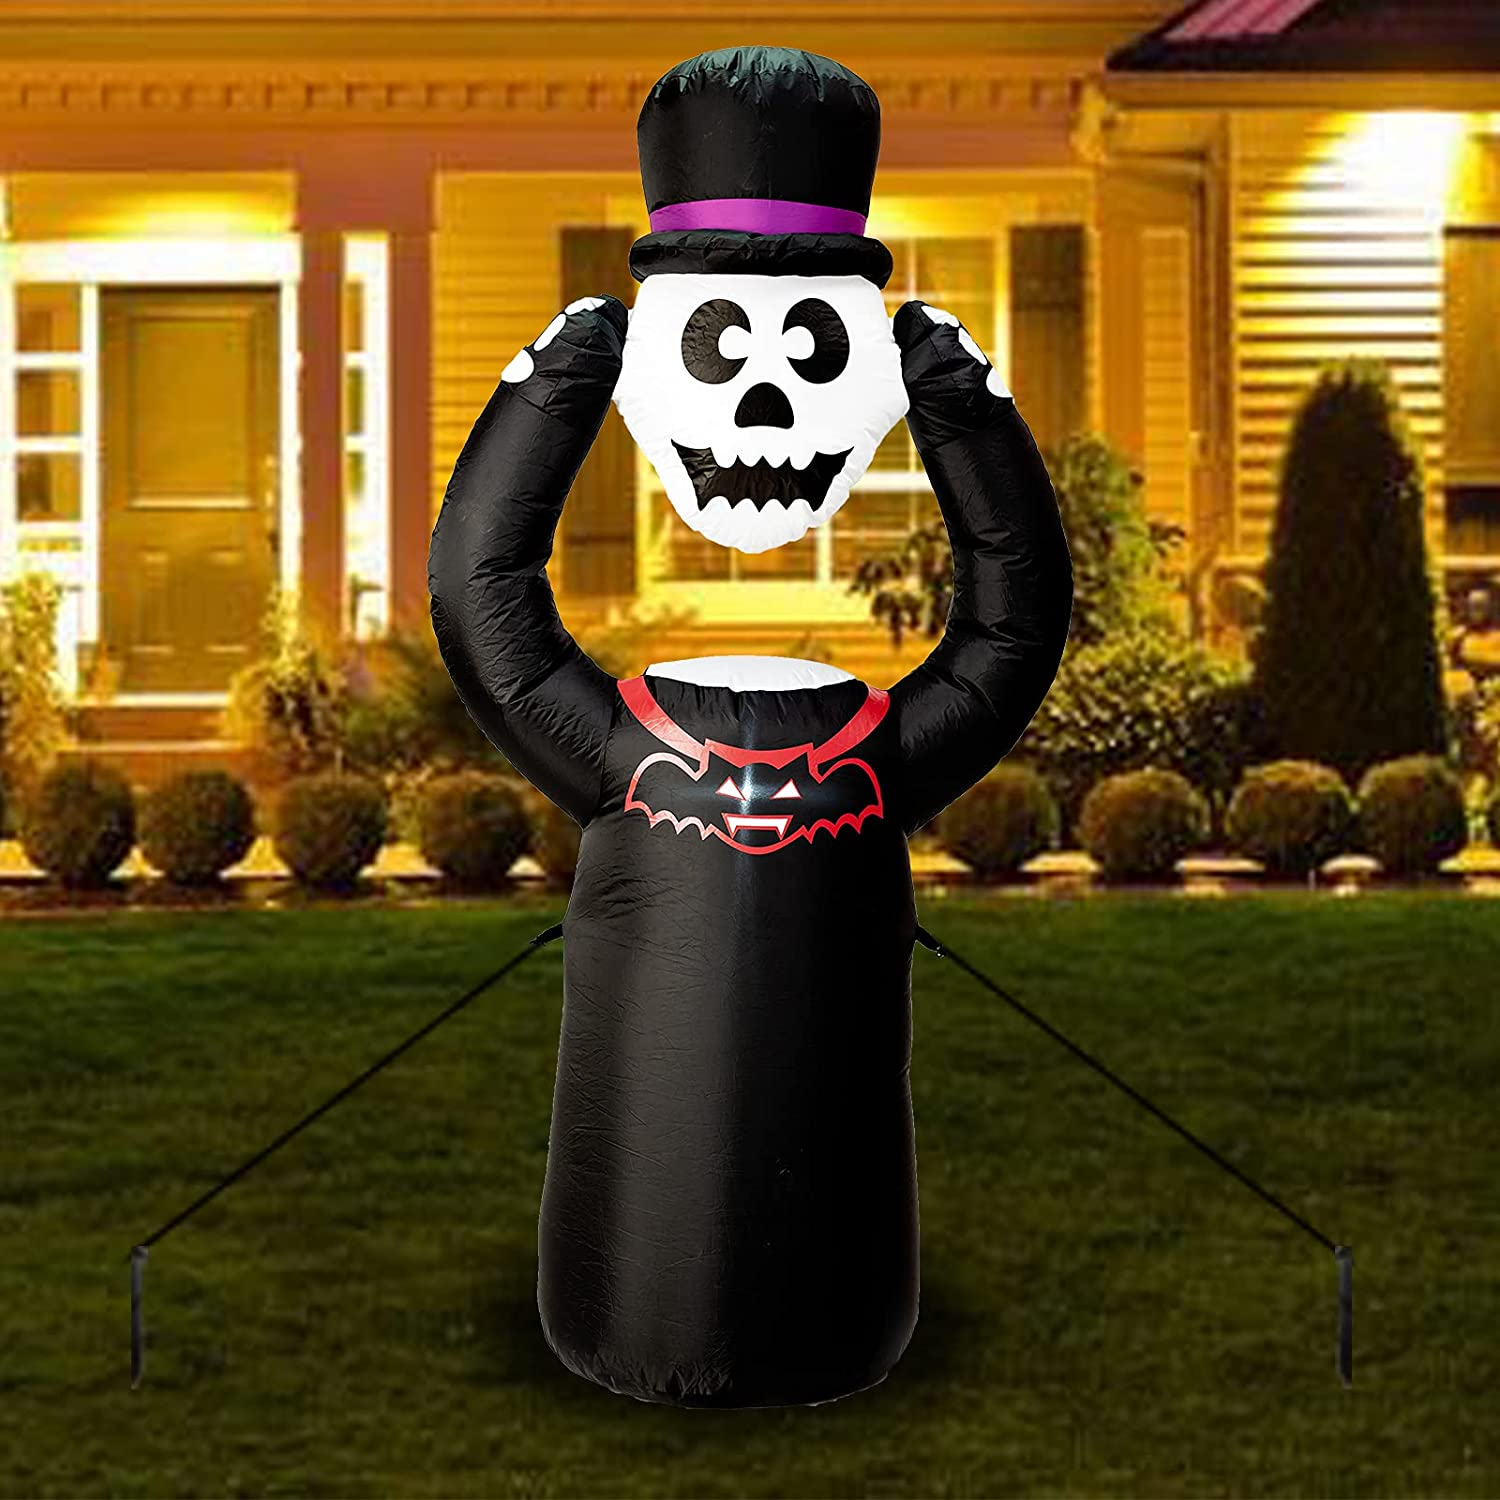 6FT High Halloween Max 40% OFF Price reduction Inflatables Skull Built-in LED Lights Ha with